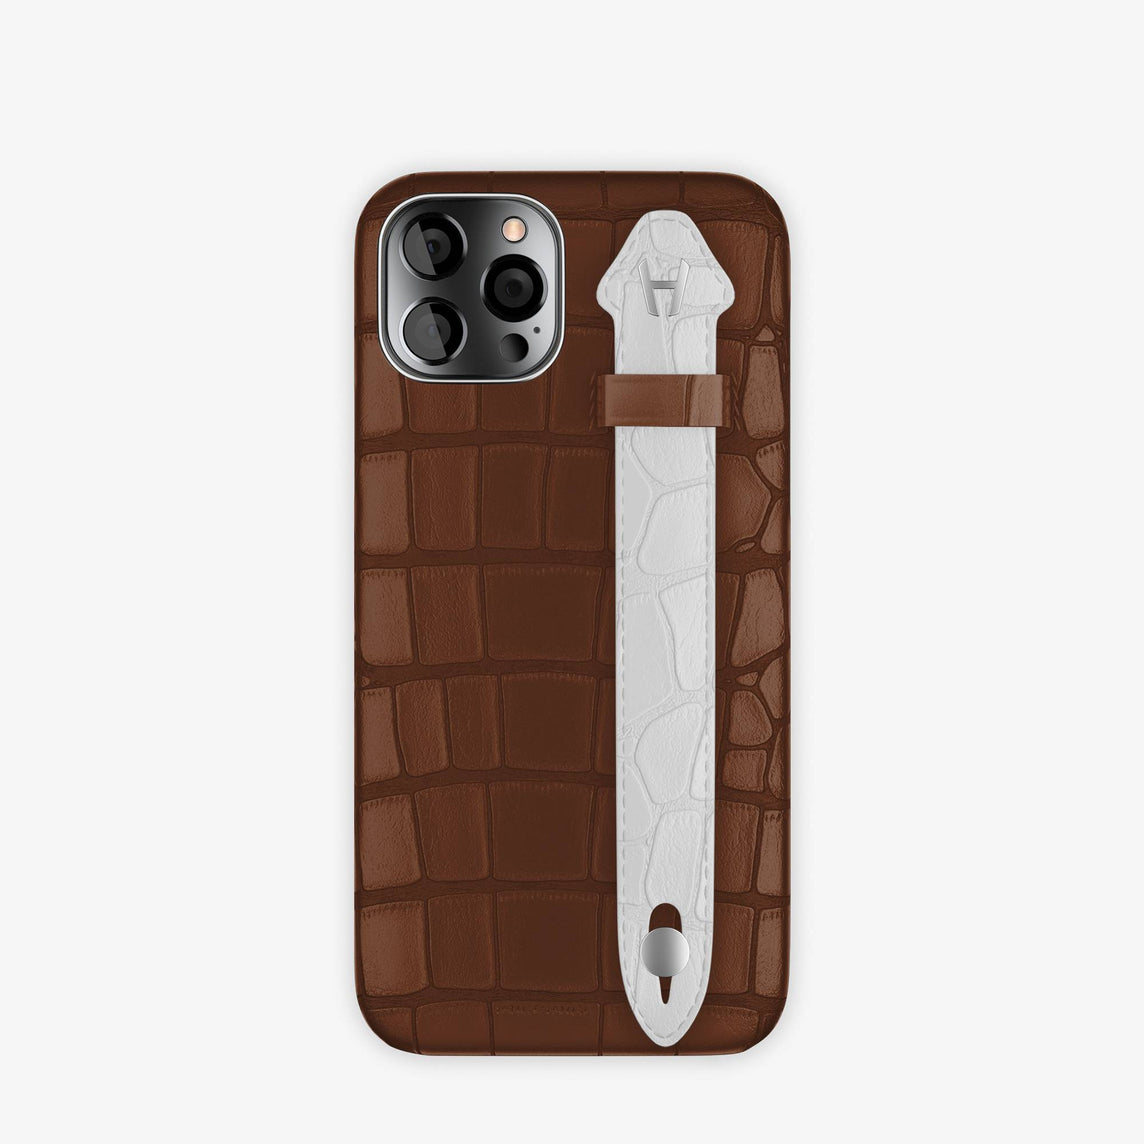 Alligator Side Finger Case iPhone 12 & iPhone 12 Pro | Brown Chocolat/White -Stainless Steel